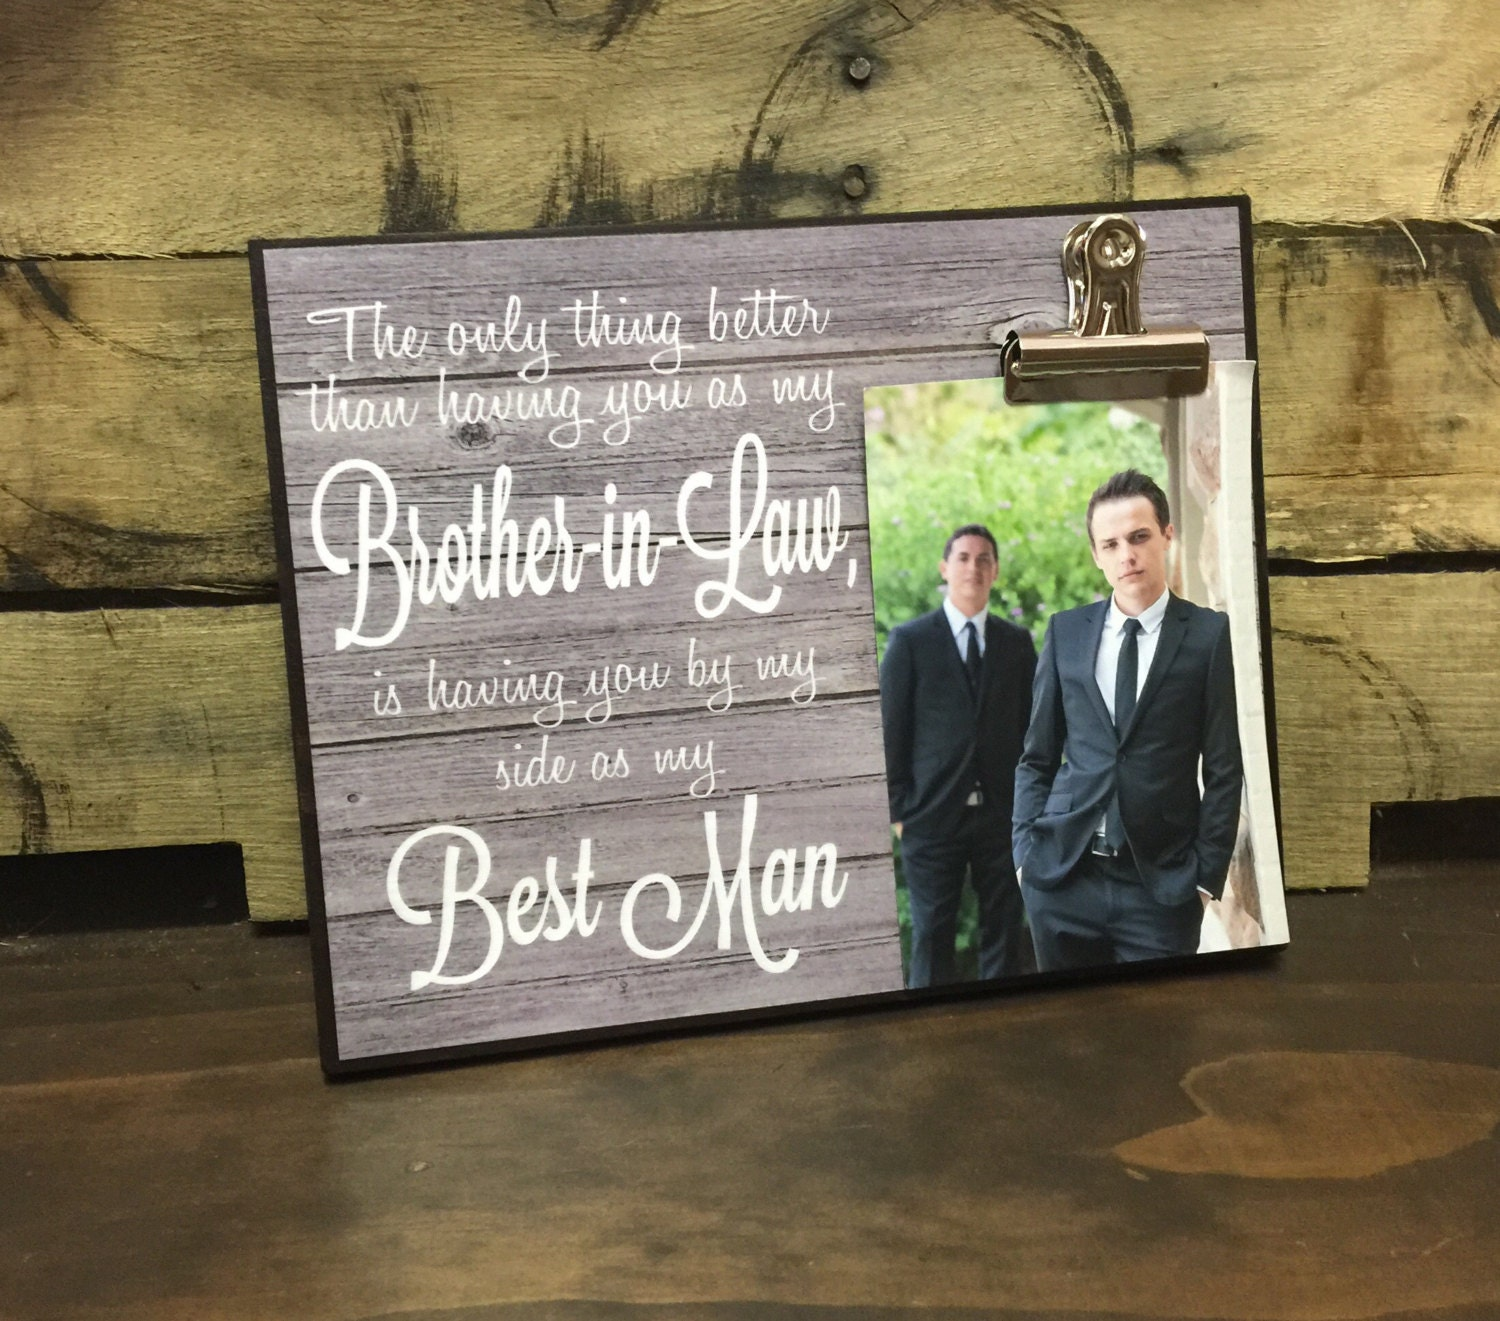 7 Brothers Wedding Gift : Best Man Gift, Wedding Thank You, The Only Thing Better Than Having ...